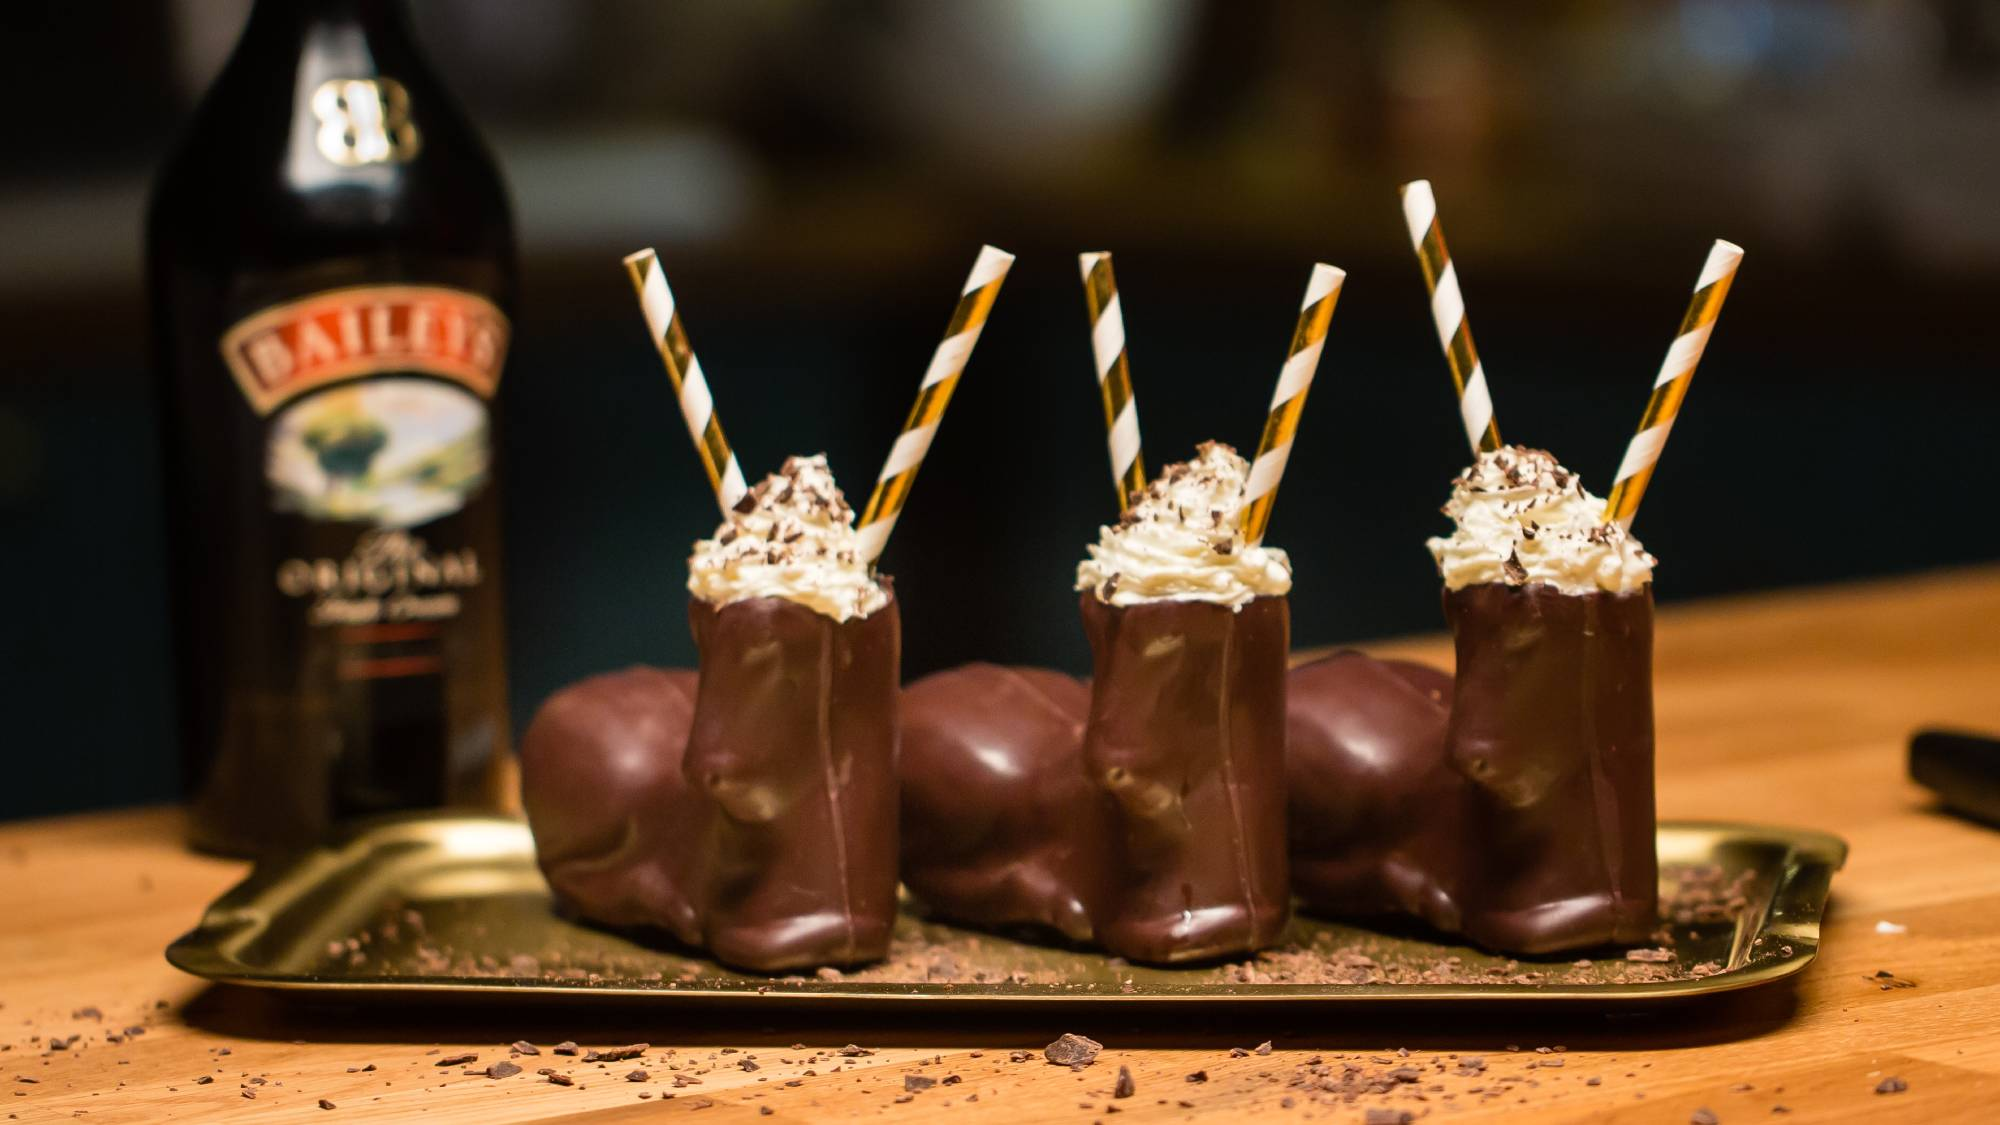 Baileys chocolate reindeer cups are here to sweeten up your festive tipple